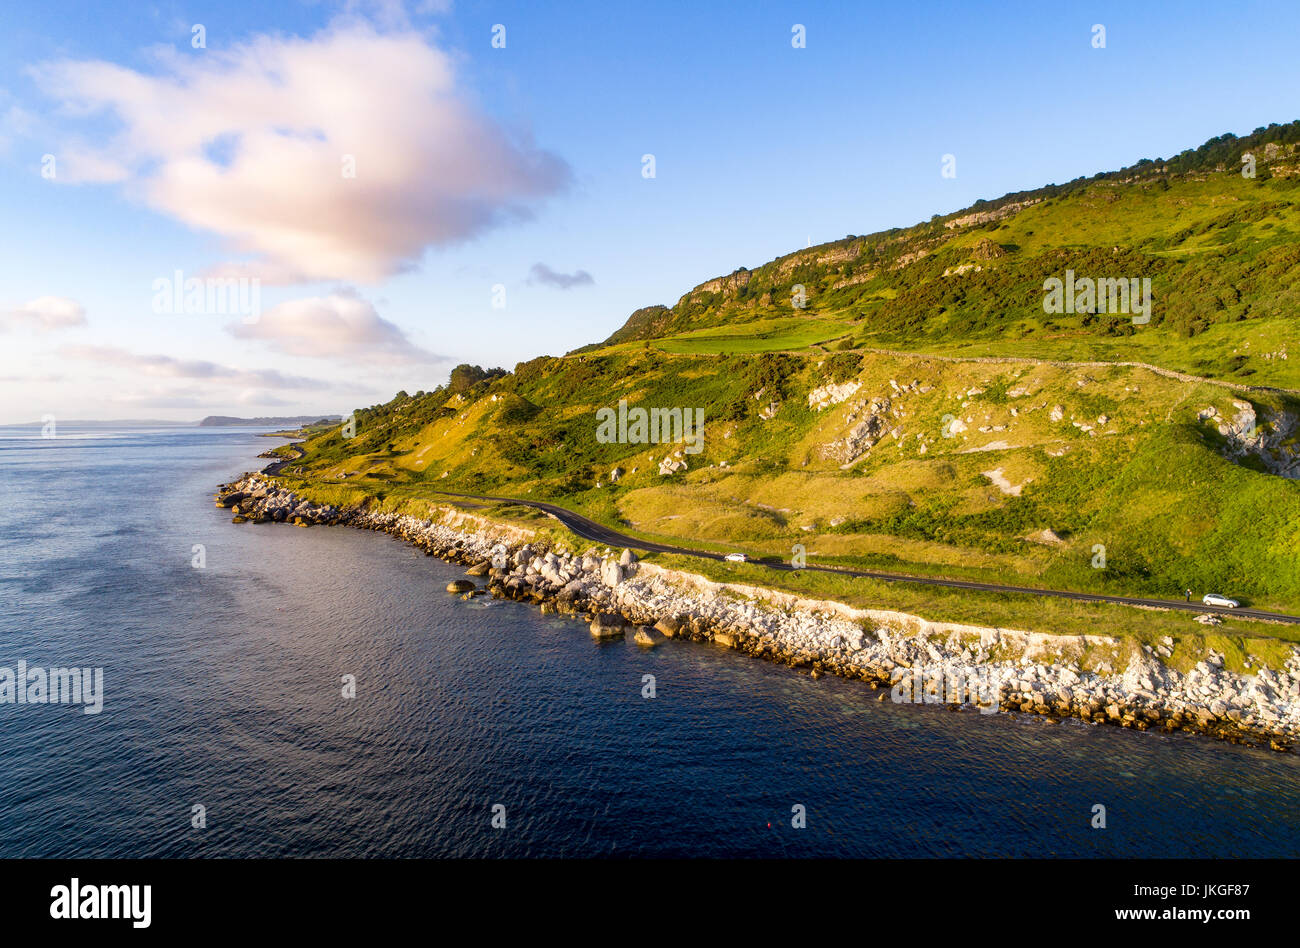 The eastern coast of Northern Ireland and Antrim Coast Road, a.k.a. Giant's Causeway Coastal Route with cars. - Stock Image